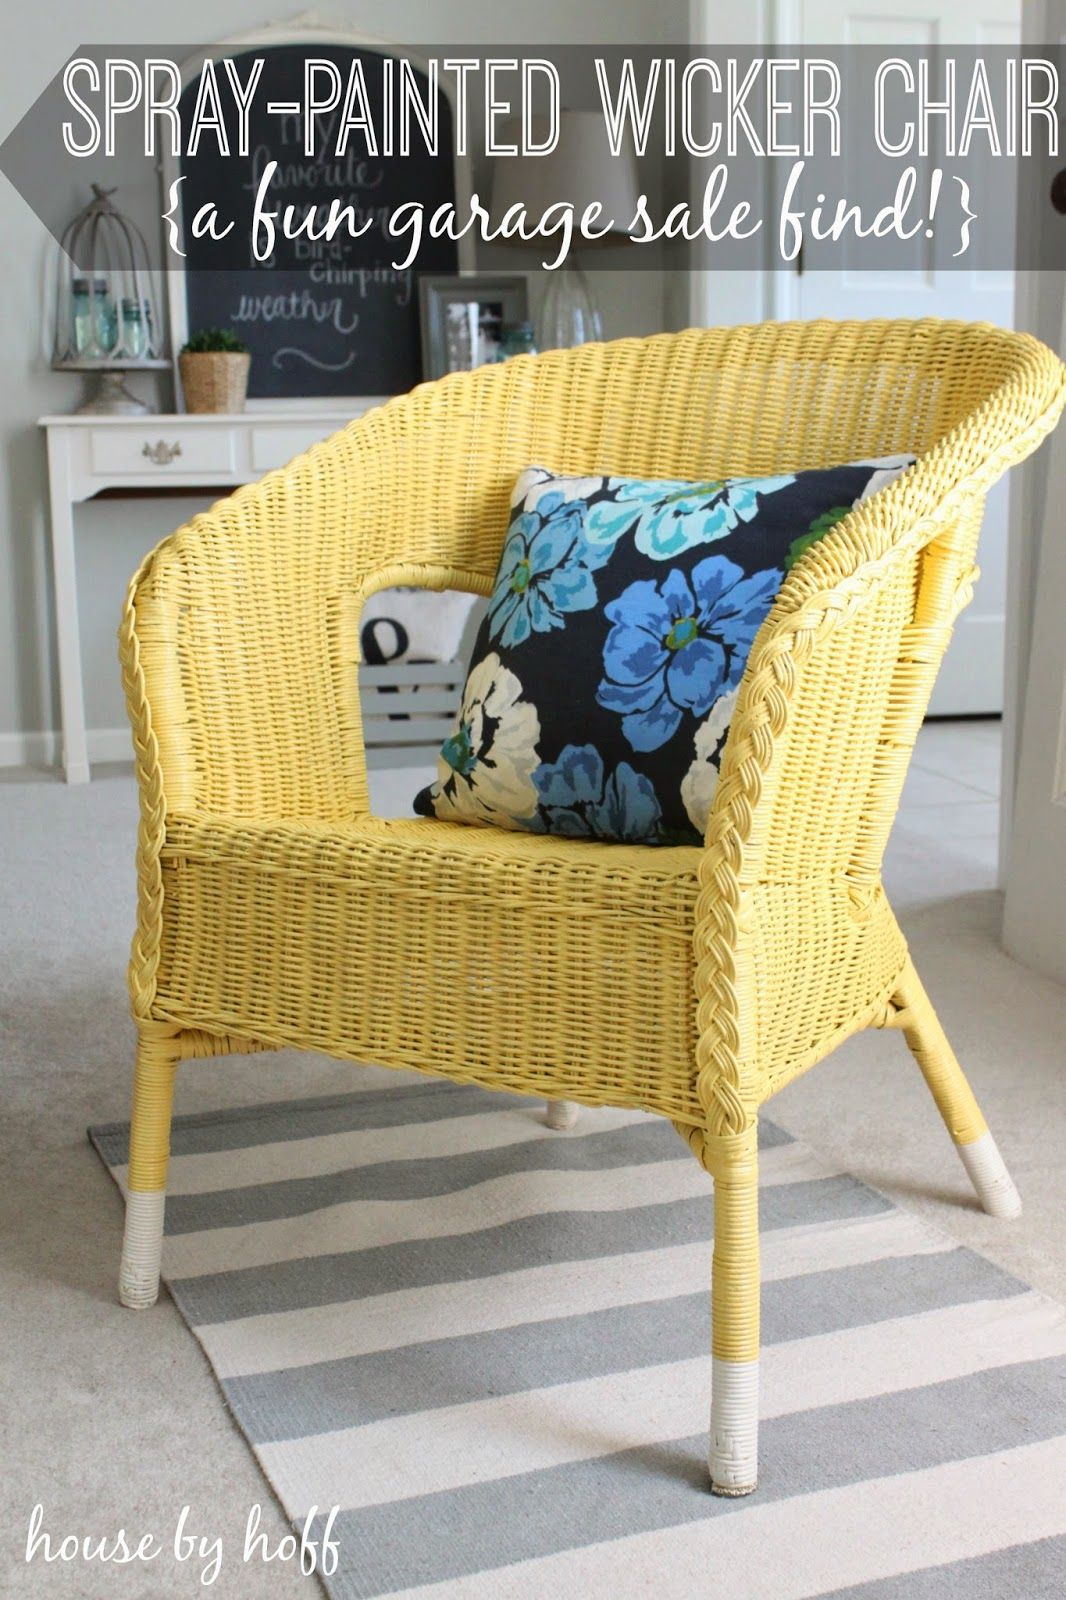 Merveilleux House By Hoff: $30 Thursday: A Spray Painted Wicker Chair!